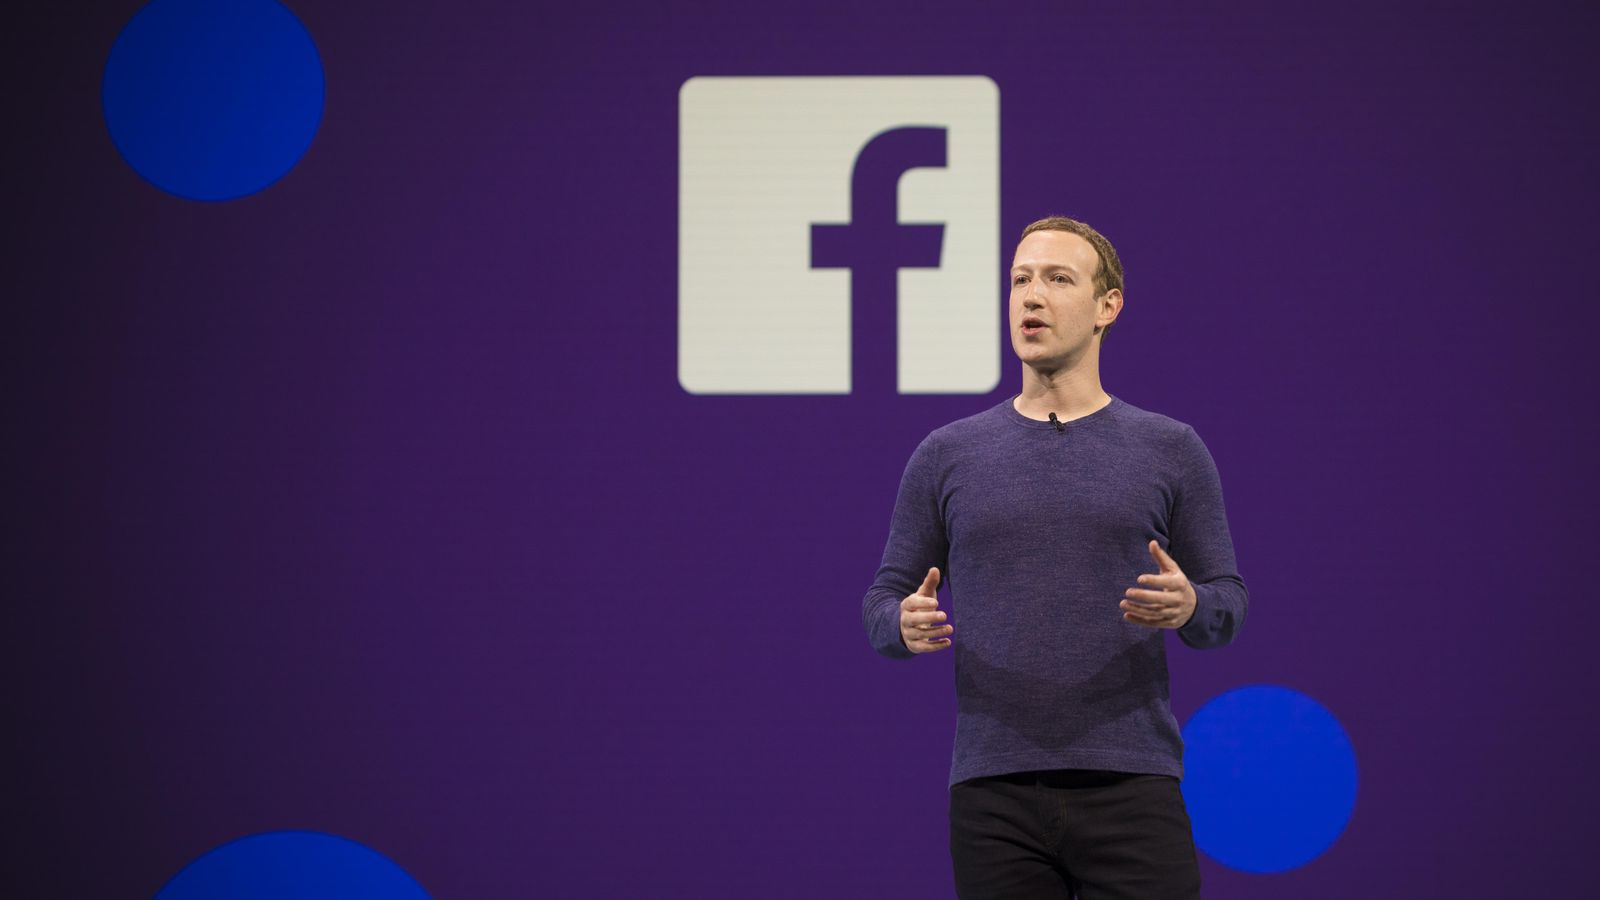 Facebook F8 2018: 5 Takeaways for Social Media Marketers